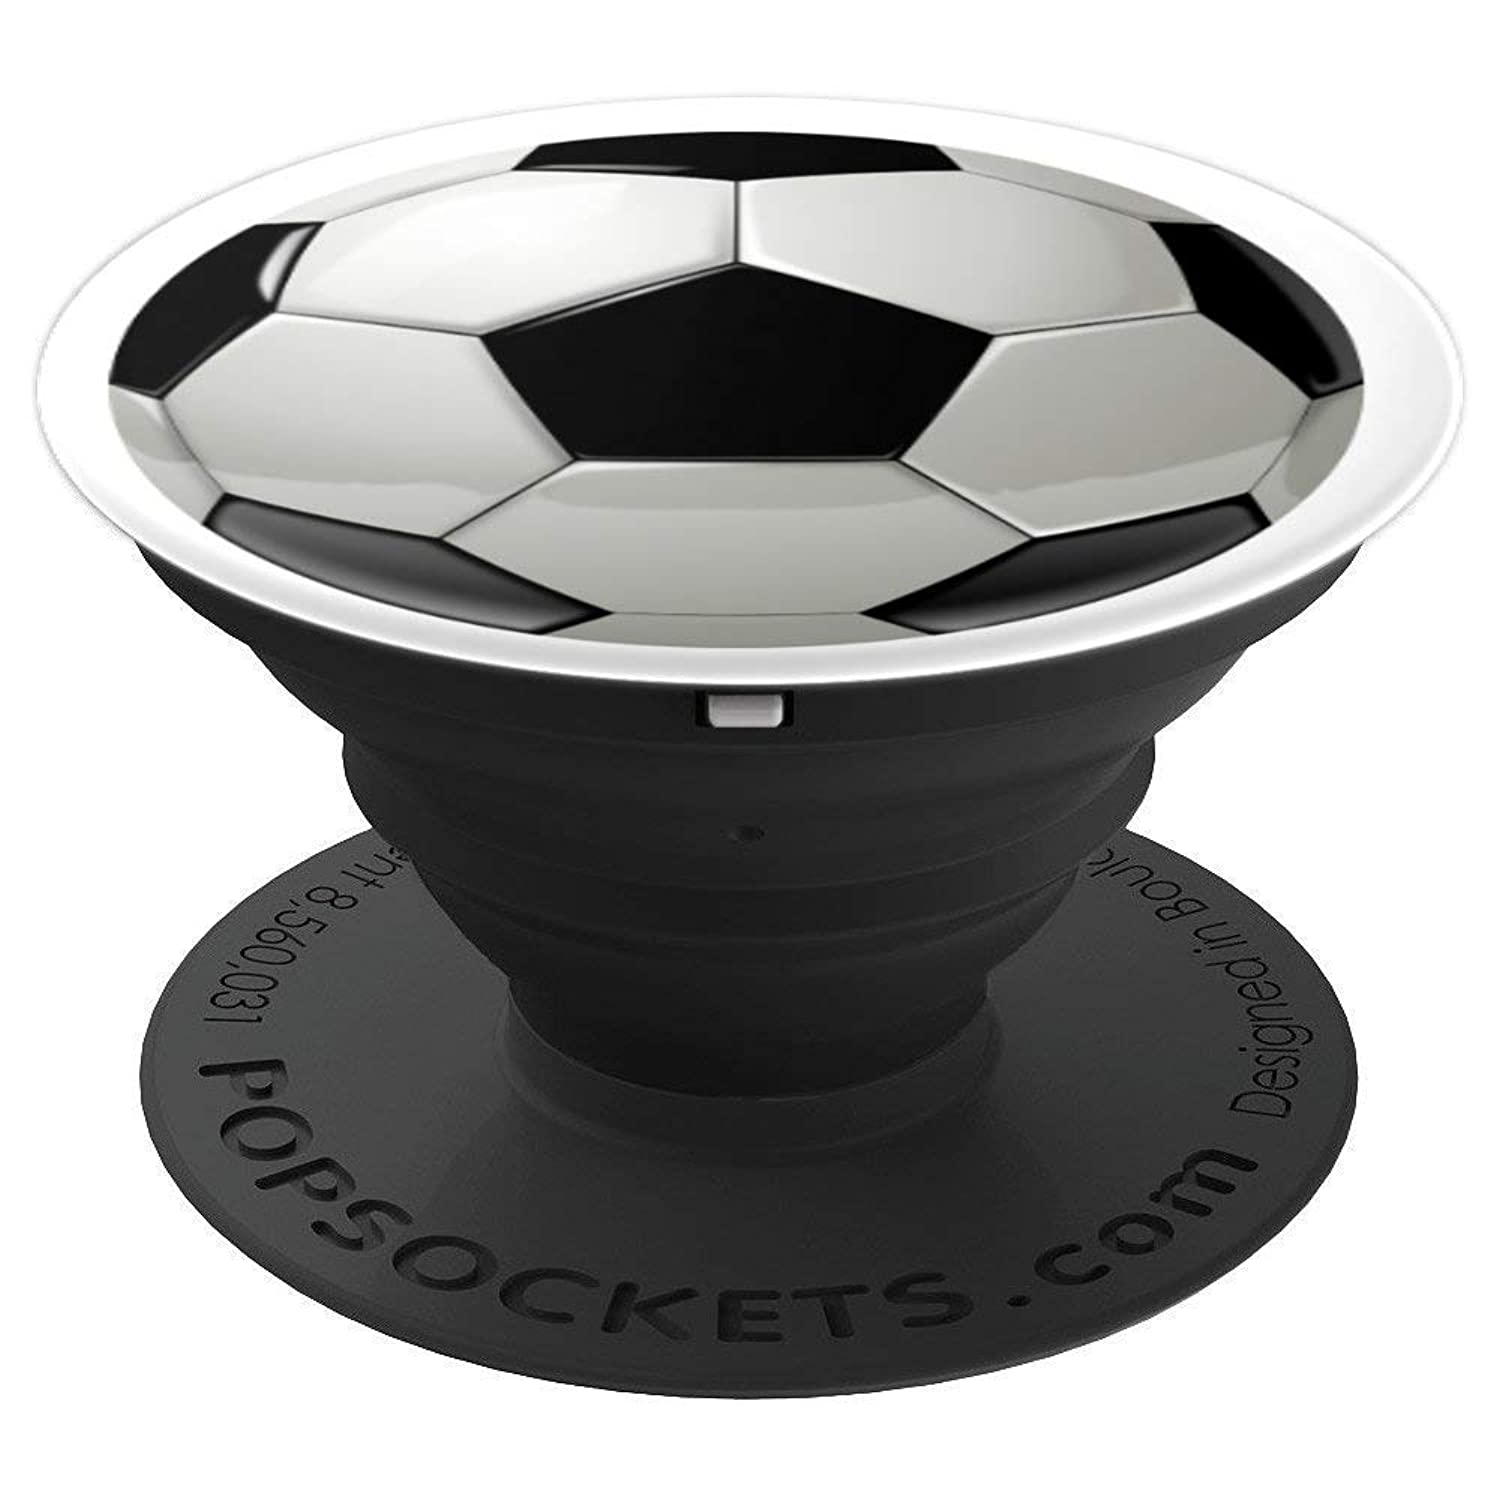 Soccer Football Player Gift Ideas: Soccer Ball - PopSockets Grip and Stand for Phones and Tablets